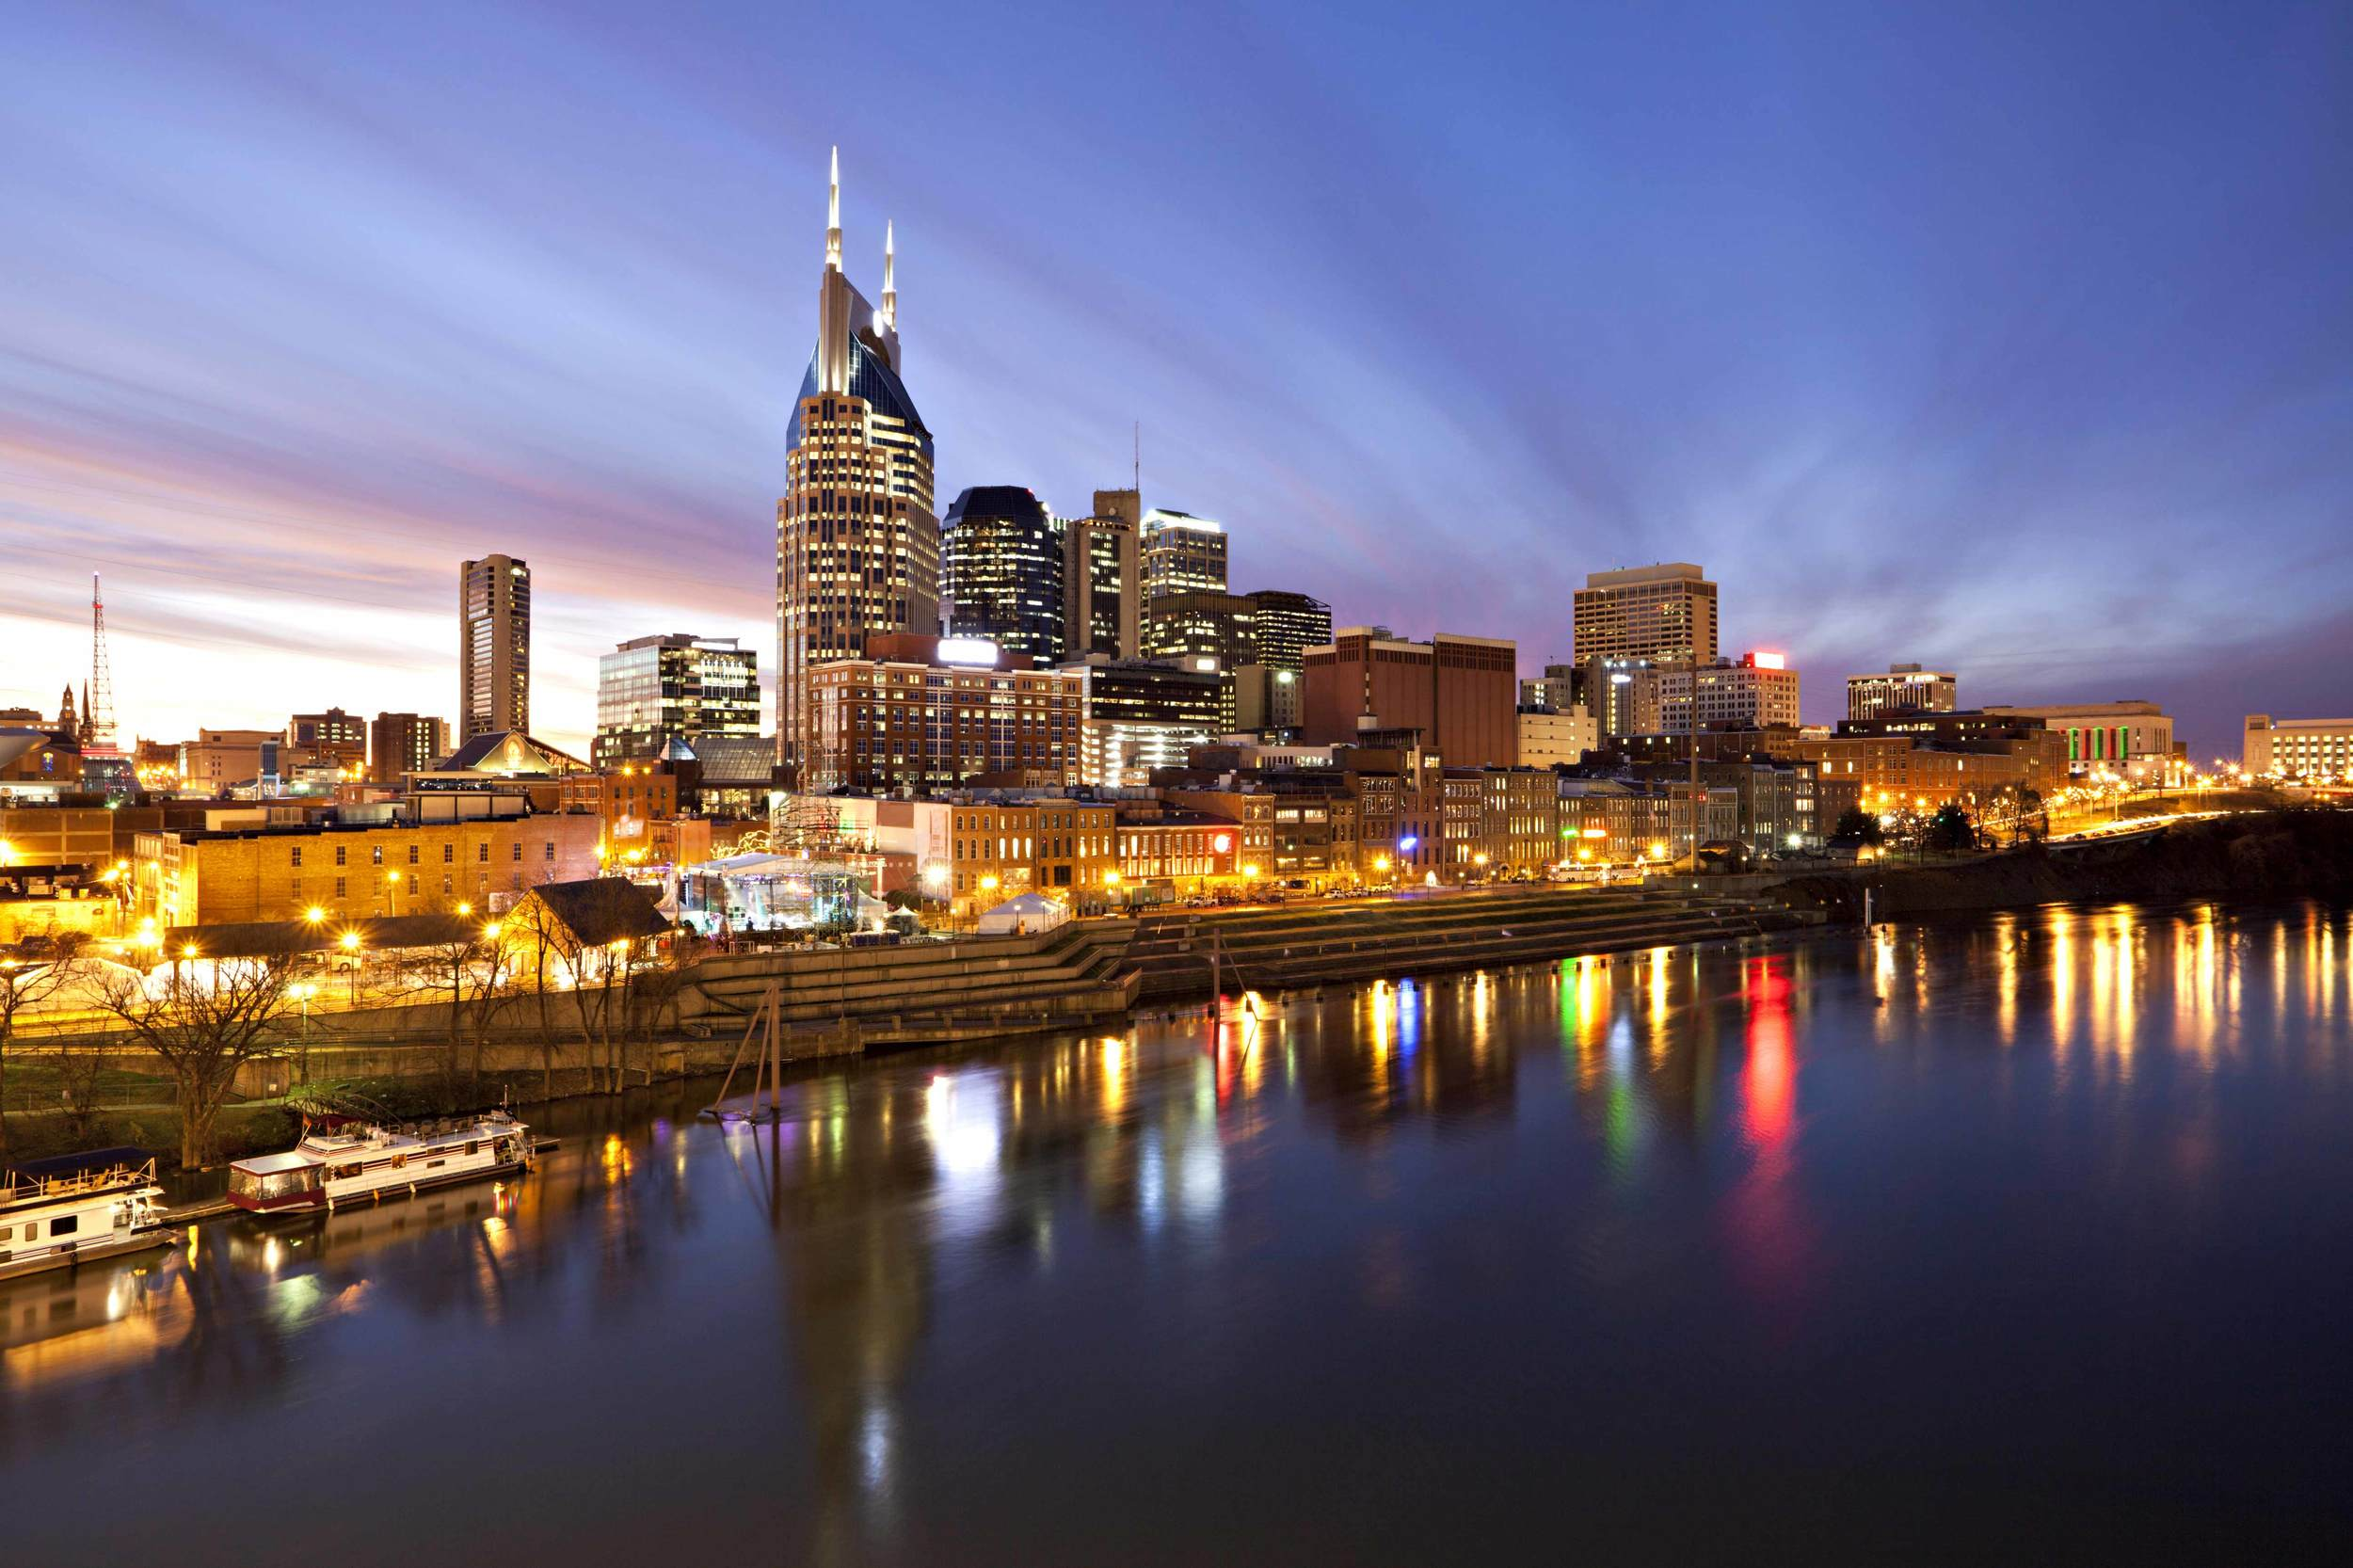 Nashville - Our Nashville office is located in the historic Stahlman Building, directly across from the Public Square Park (home of the Live on the Green music festival) and only a few blocks from Broadway, where you can get your fill of Honky-Tonks and Hot Chicken.